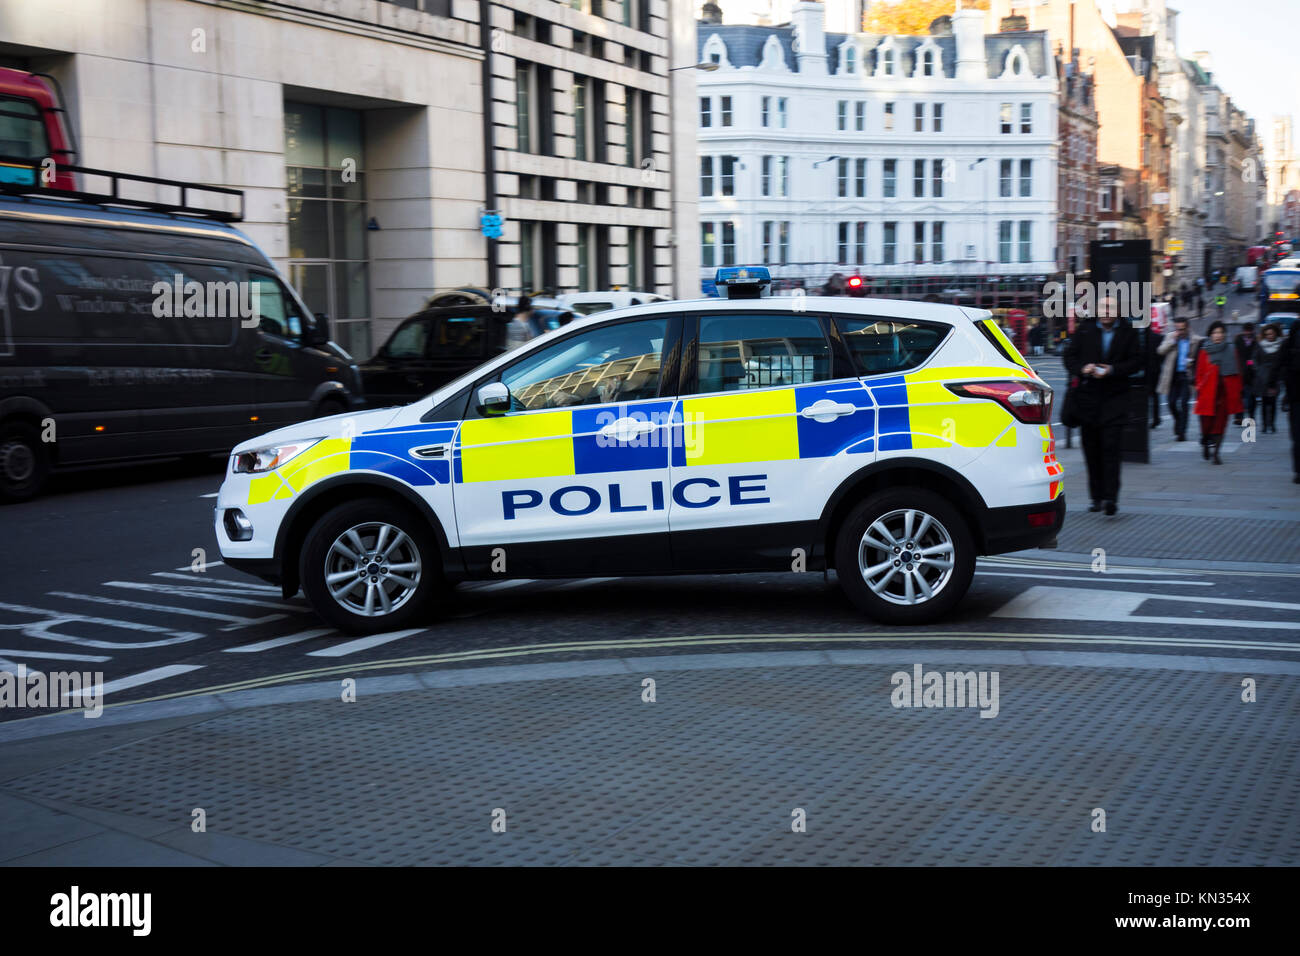 City of London police car le véhicule à une jonction sur Ludgate Hill, Royaume-Uni Photo Stock